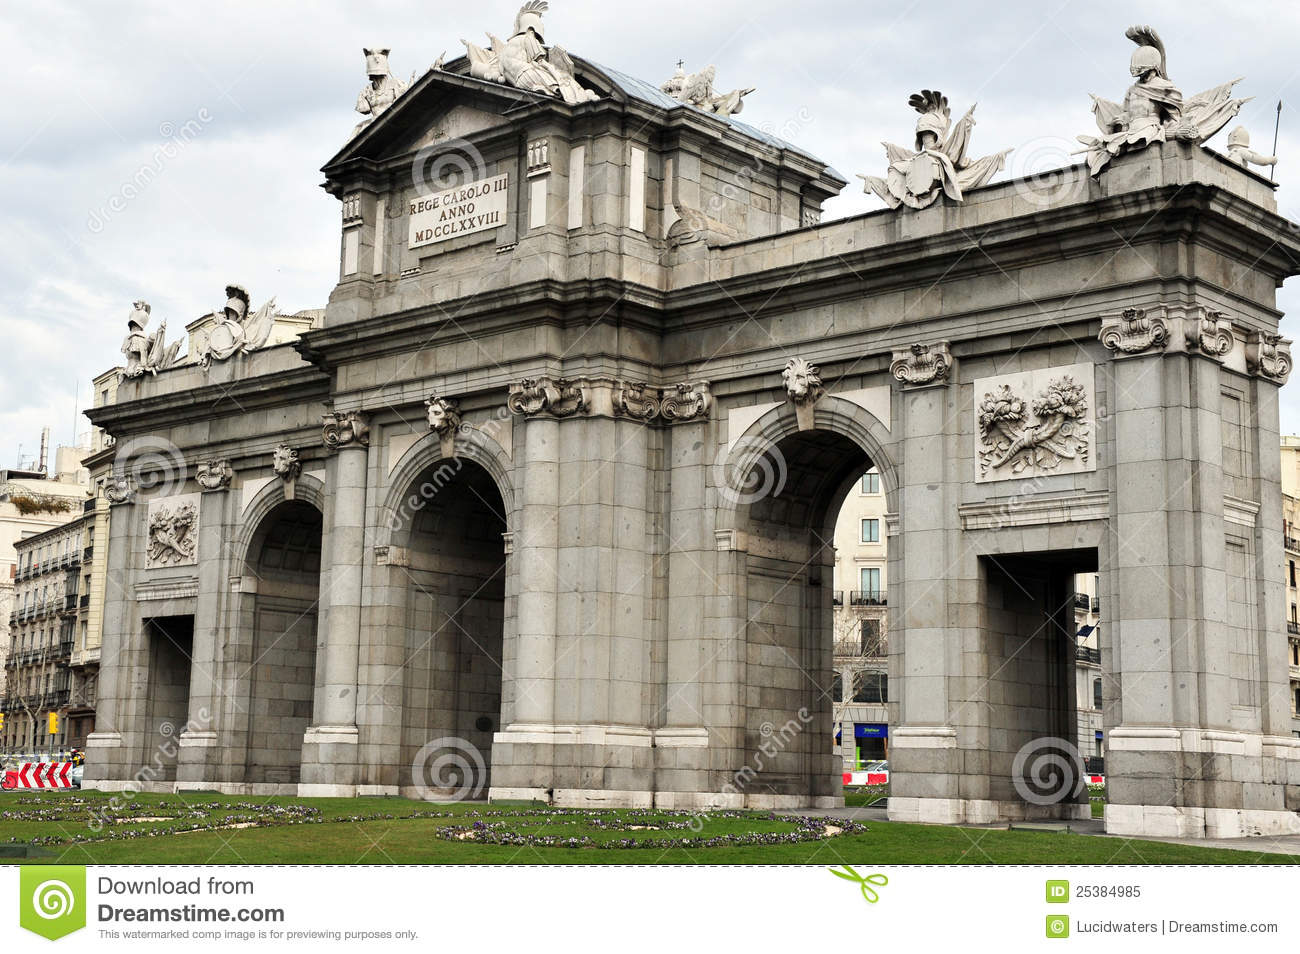 Madrid Arc De Triumph Royalty Free Stock Photo - Image: 25384985